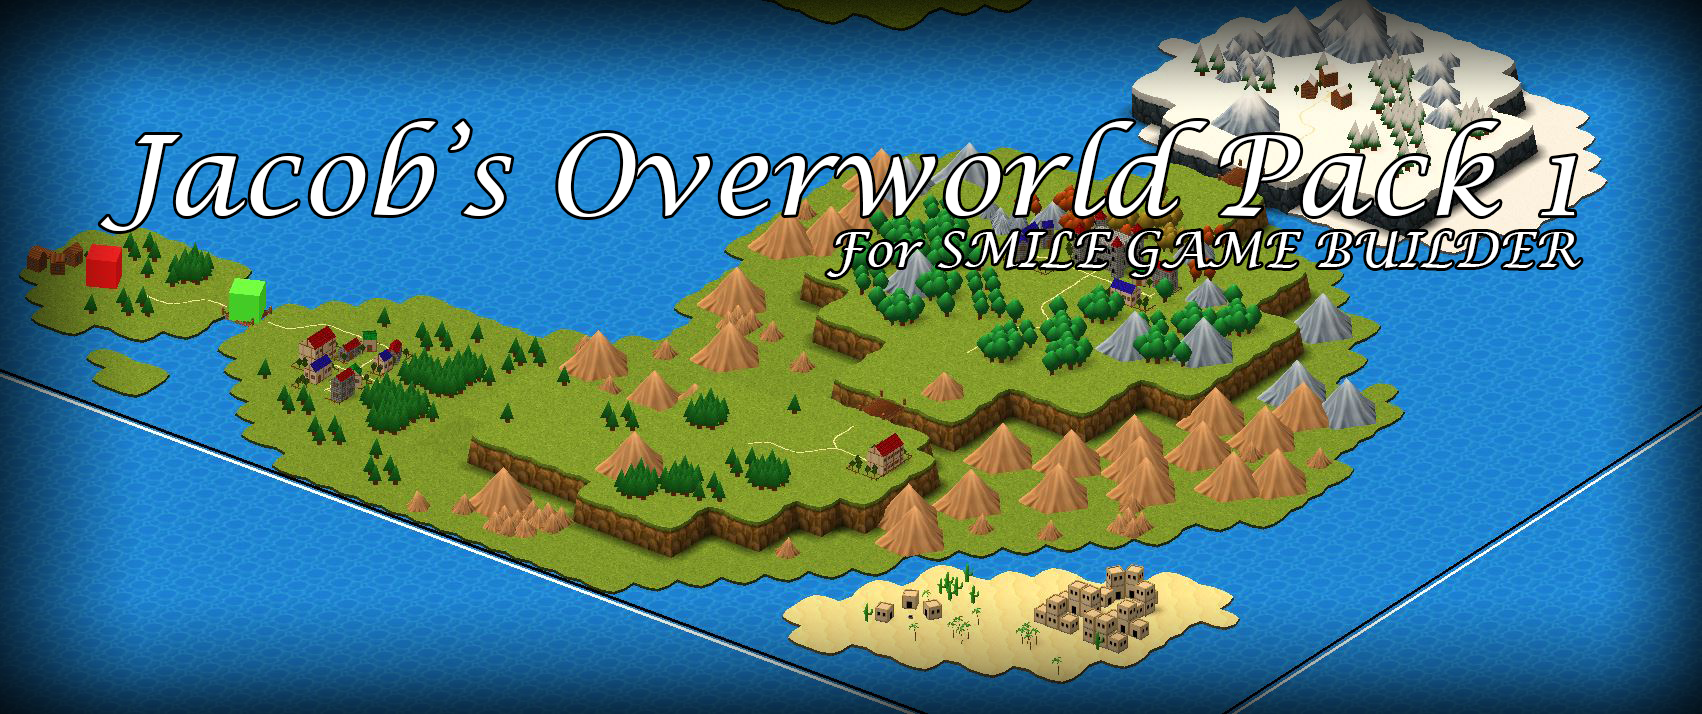 Jacob's Overworld Pack 1 for SMILE GAME BUILDER